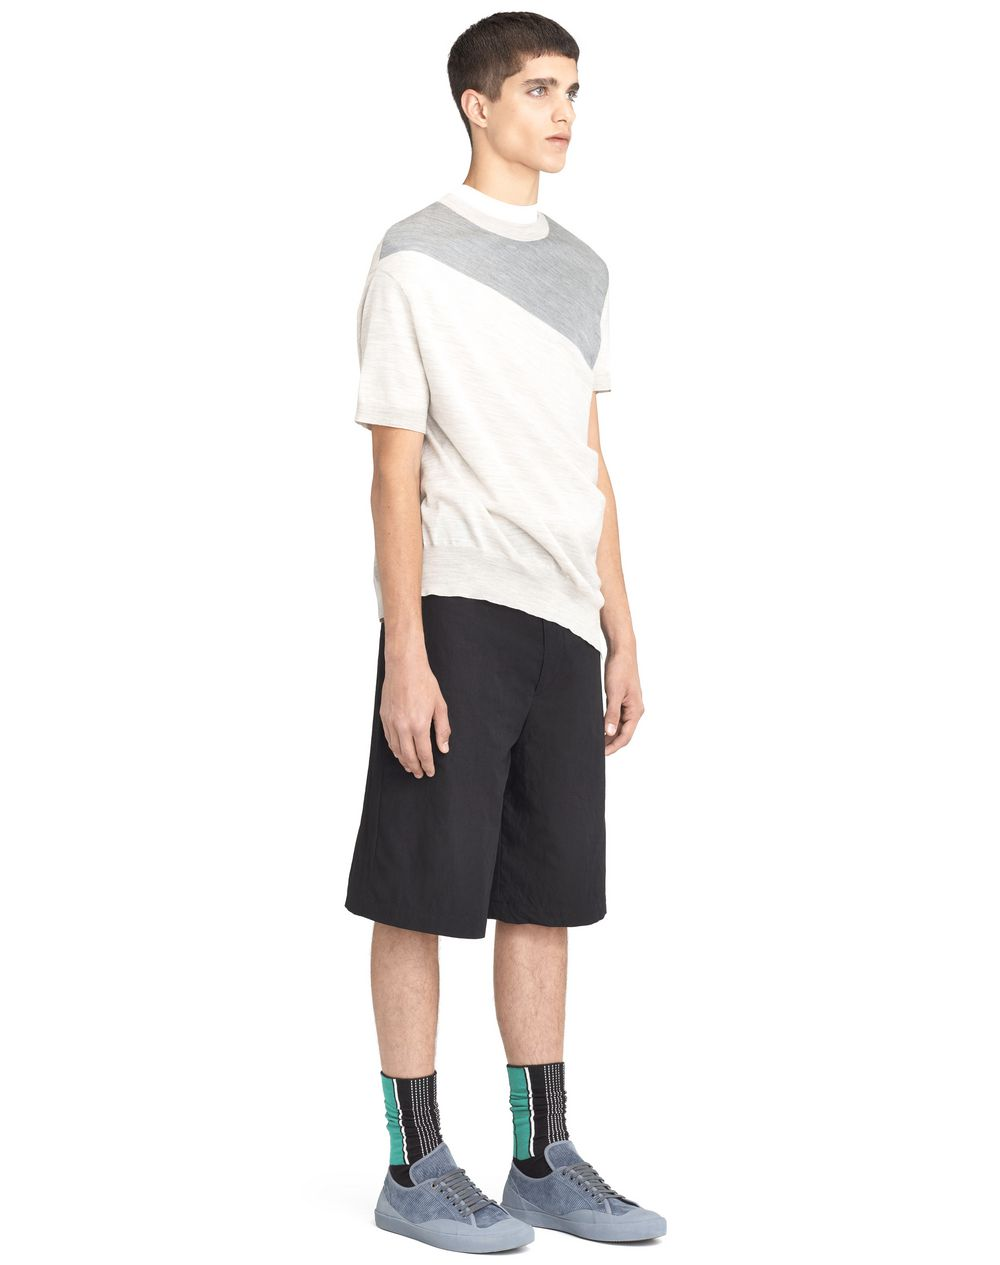 TWO-TONED ASYMMETRICAL TWISTED SWEATER - Lanvin